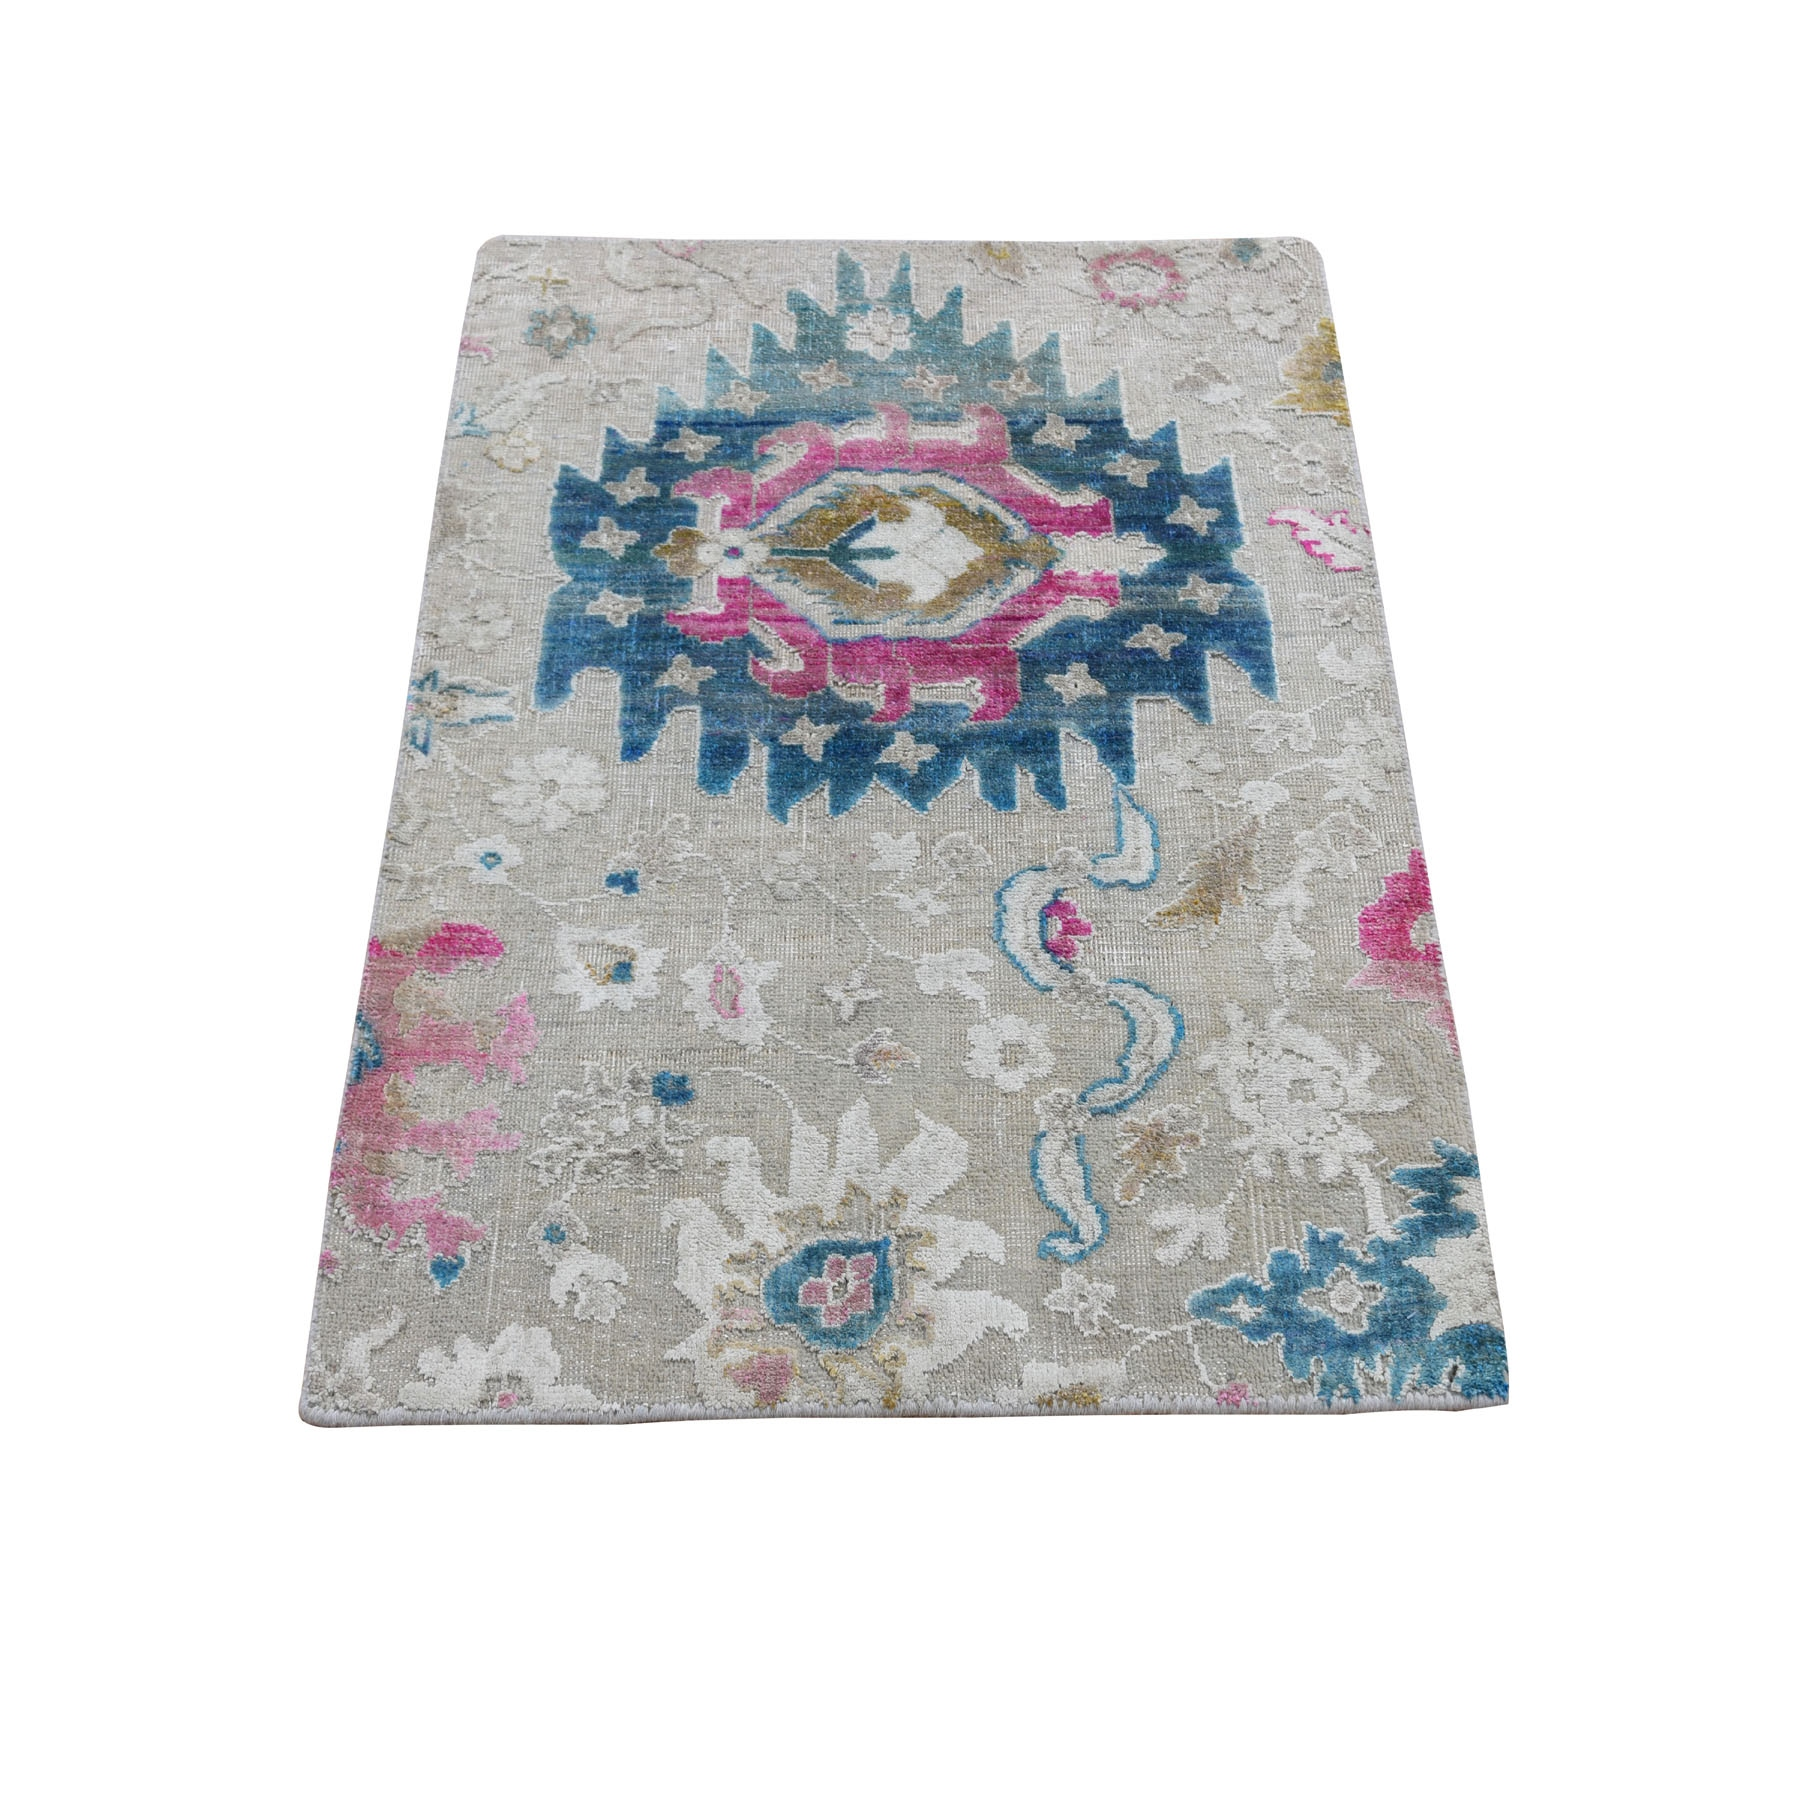 2'X3' Colorful Sari Silk With Textured Wool Hand Knotted Oushak Influence Rug moad8a0d